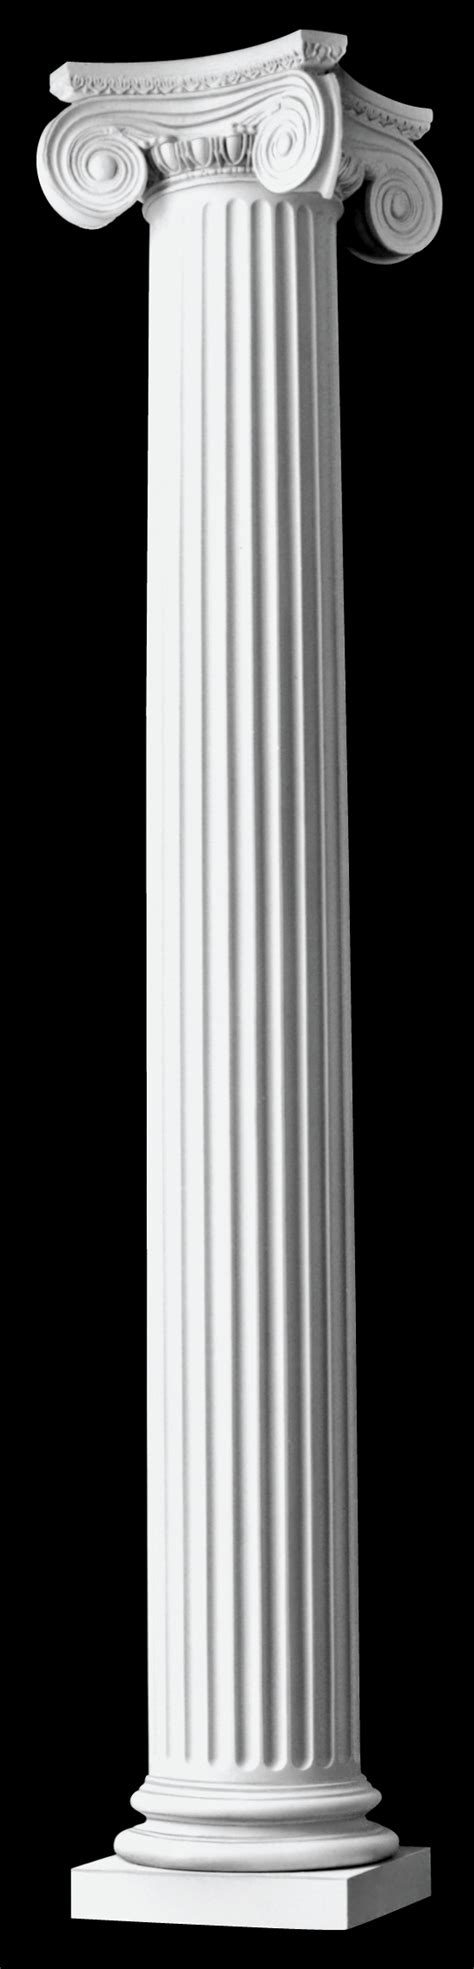 fluted architectural wood columns angular ionic design